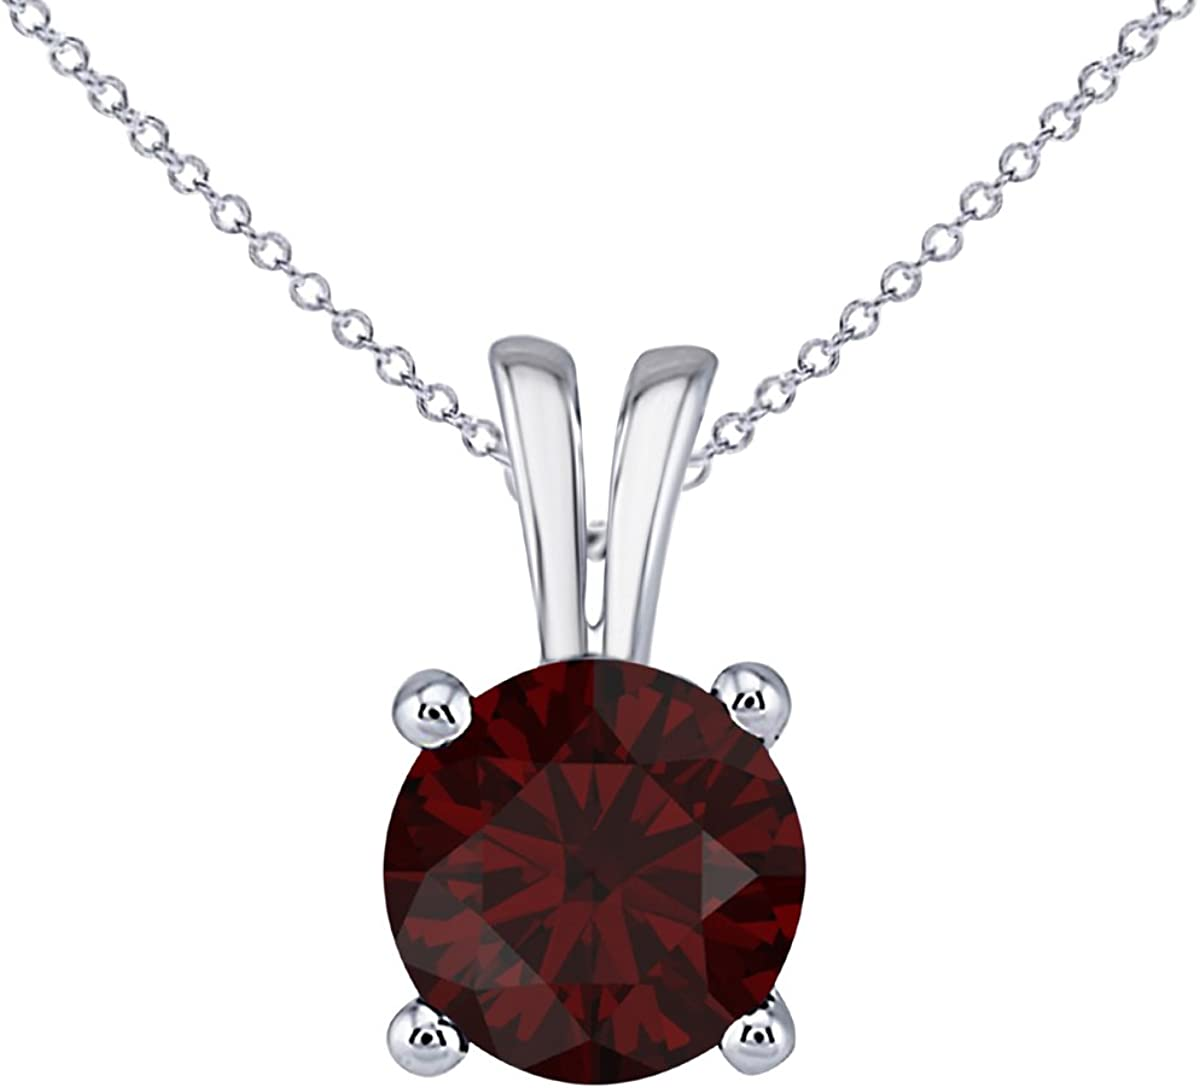 Hot Classic Look 1.00 Ct Round Cut Red Ruby CZ Solitaire Pendant Necklace for Women 18 16+2 Ext.